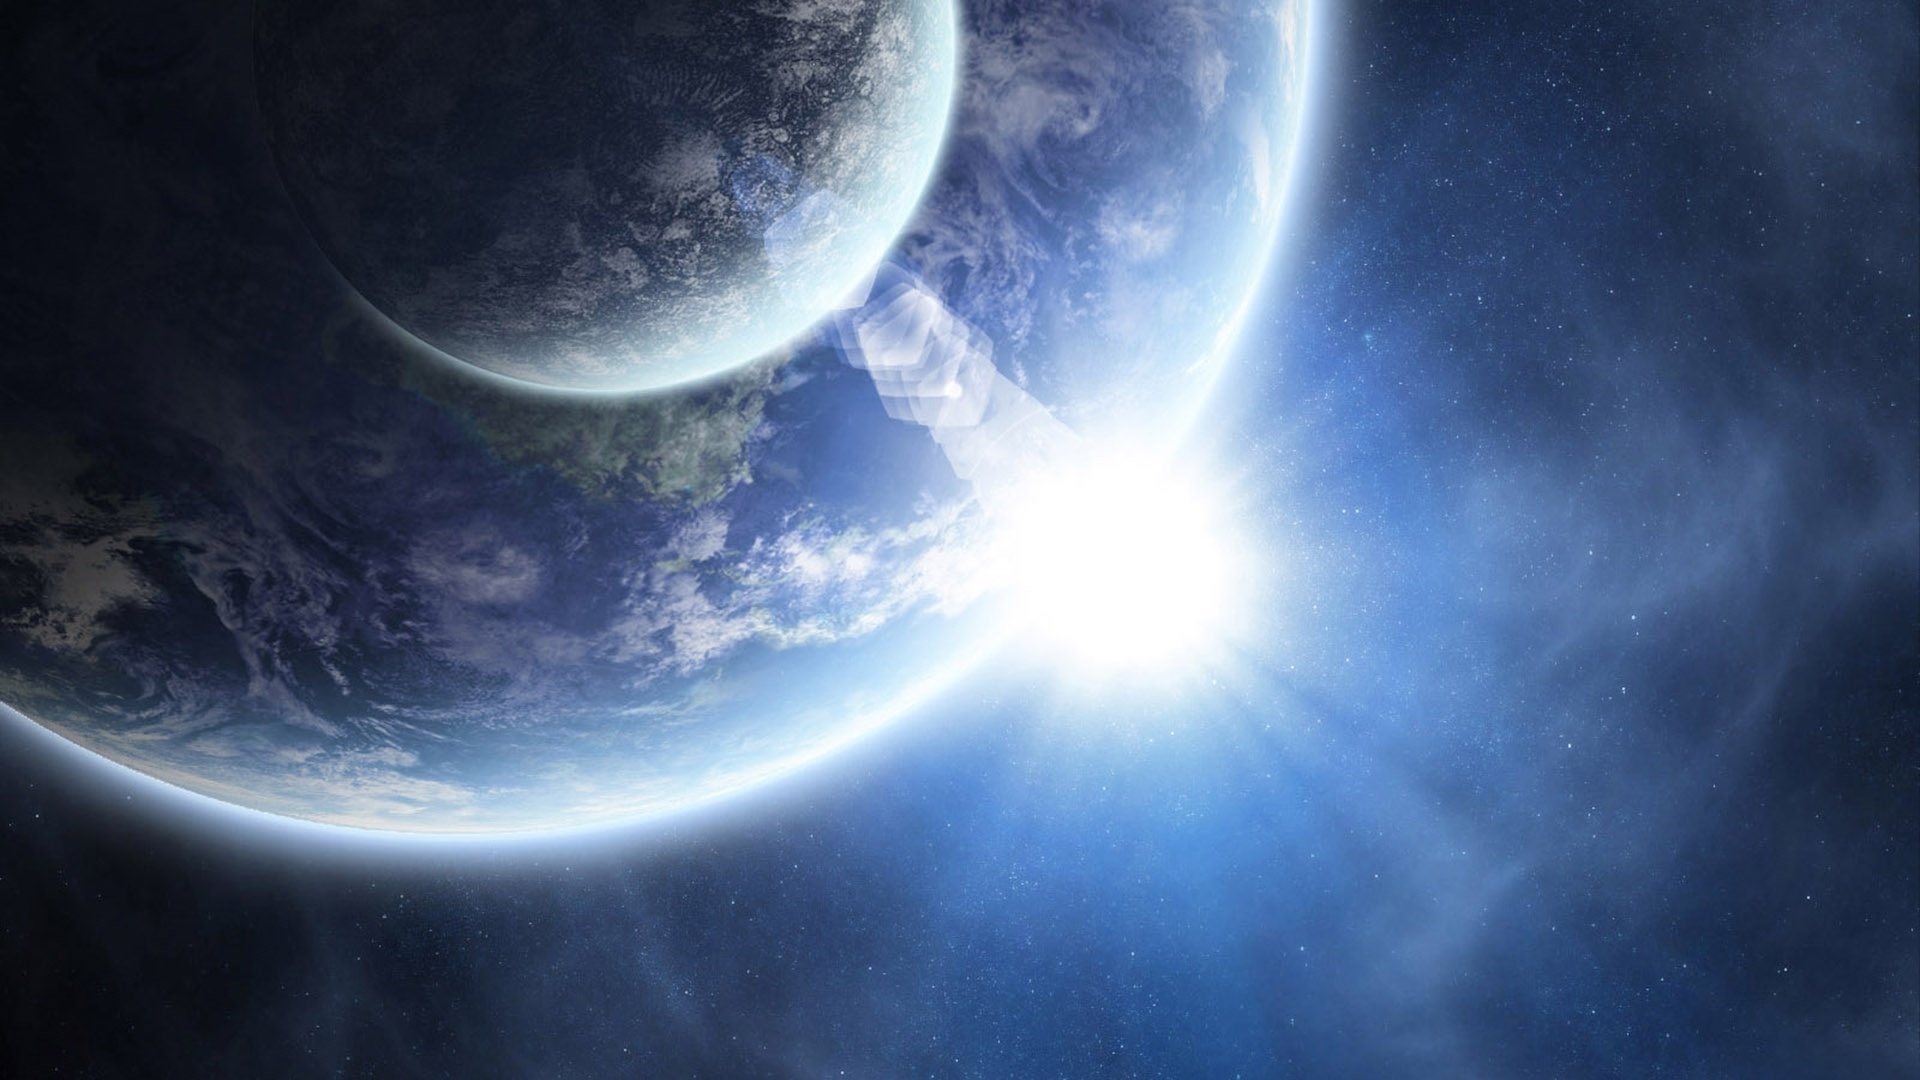 46720 download wallpaper Landscape, Planets, Universe screensavers and pictures for free